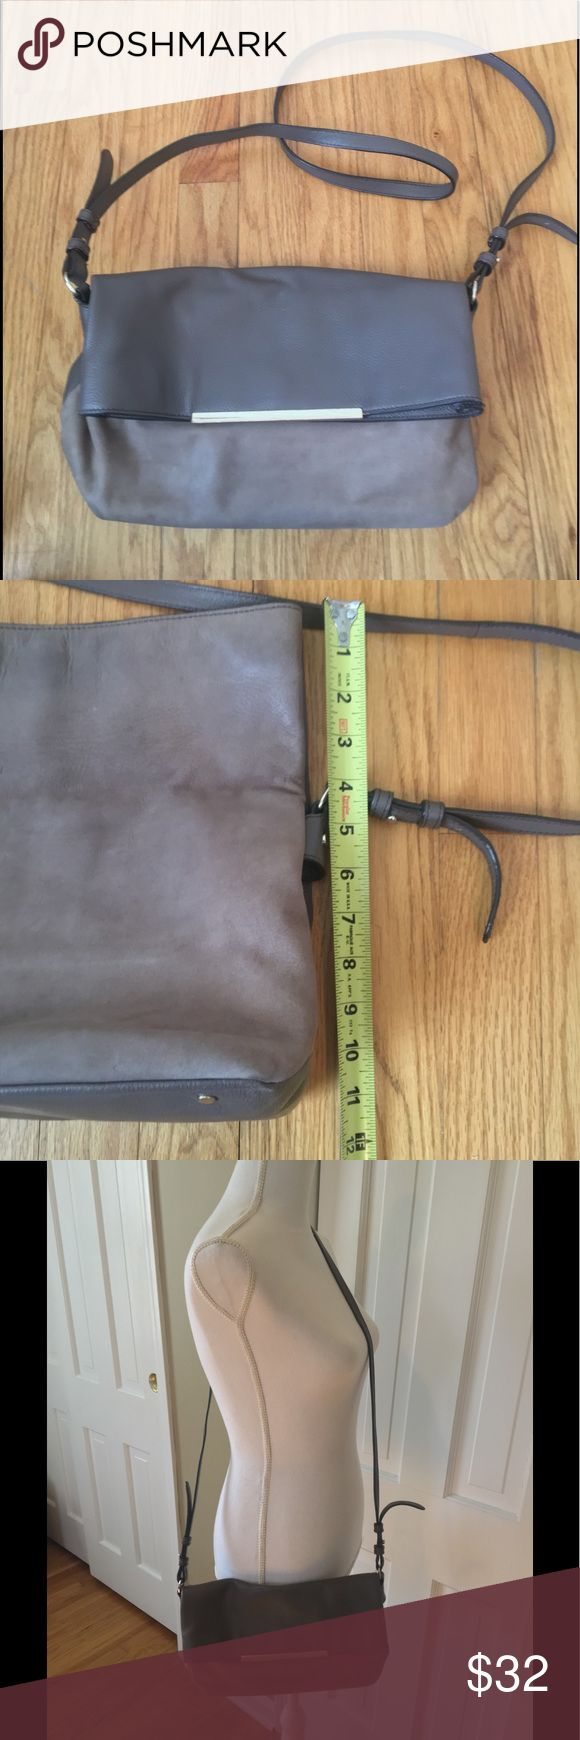 Banana Republic leather and suede crossbody bag Taupe color.  One main compartment with 3 pockets inside for phone and keys. Magnet closure.  Gold hardware. In good condition, but there is some wear on the bottom as shown in the last image. Banana Republic Bags Crossbody Bags